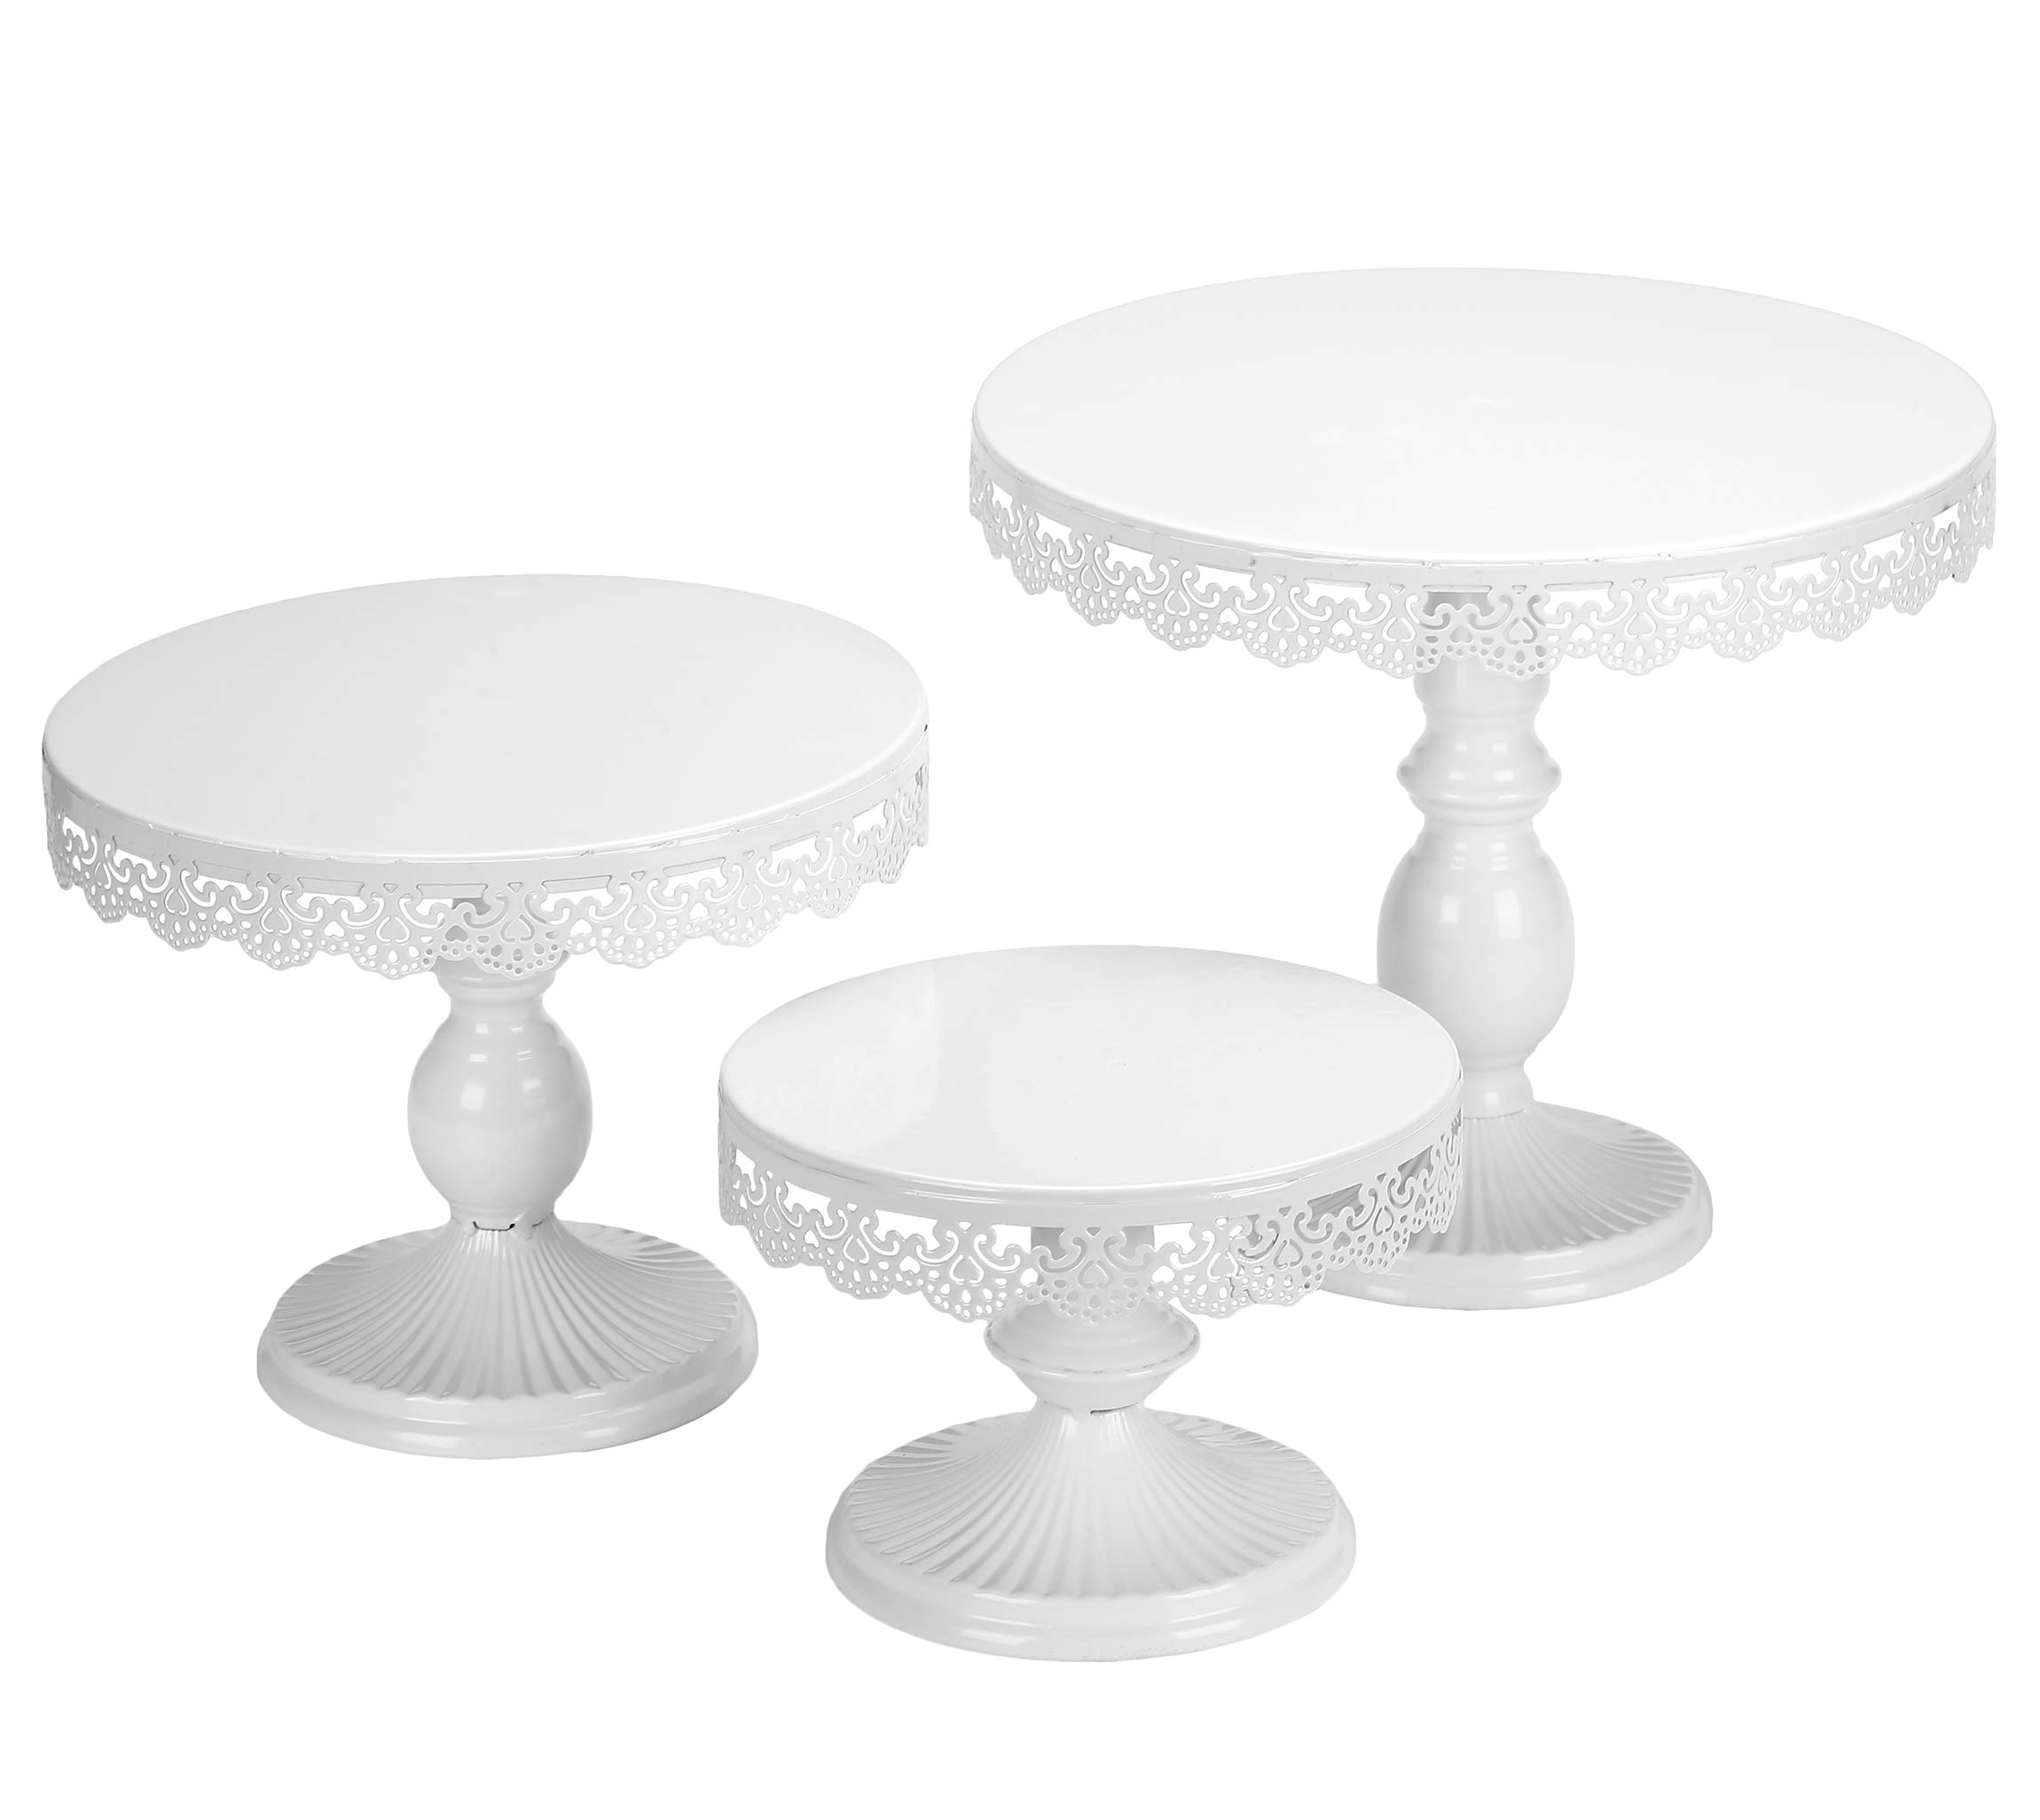 VILAVITA Set of 3 Cake Stands Round Cupcake Stands Metal Dessert Display Cake Stand, White